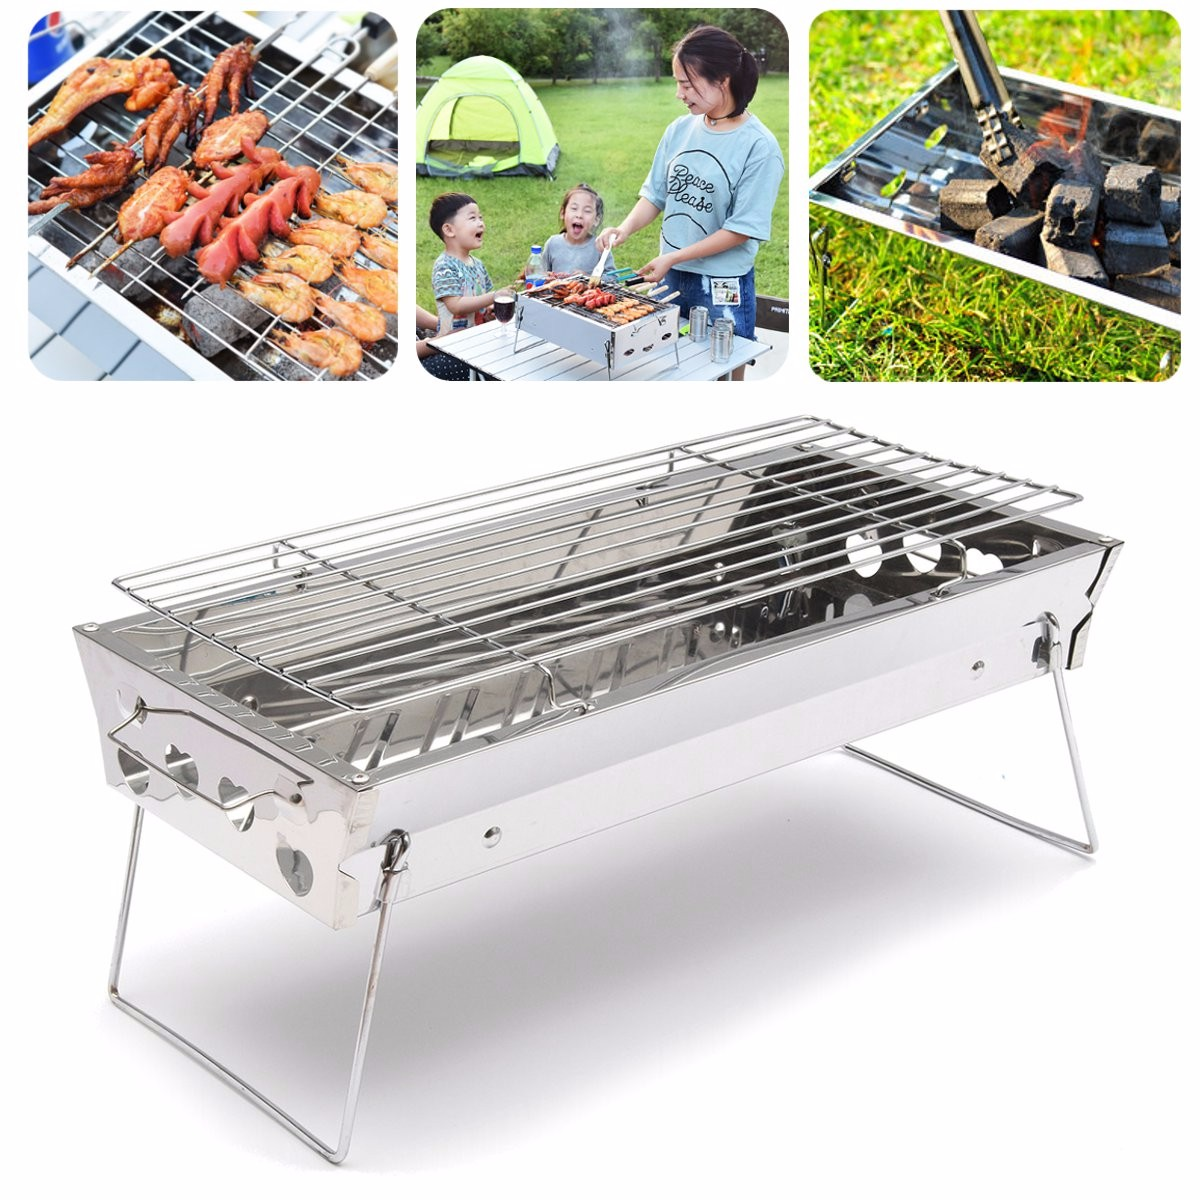 Stainless Steel Portable Outdoor Camping Tabletop Barbe